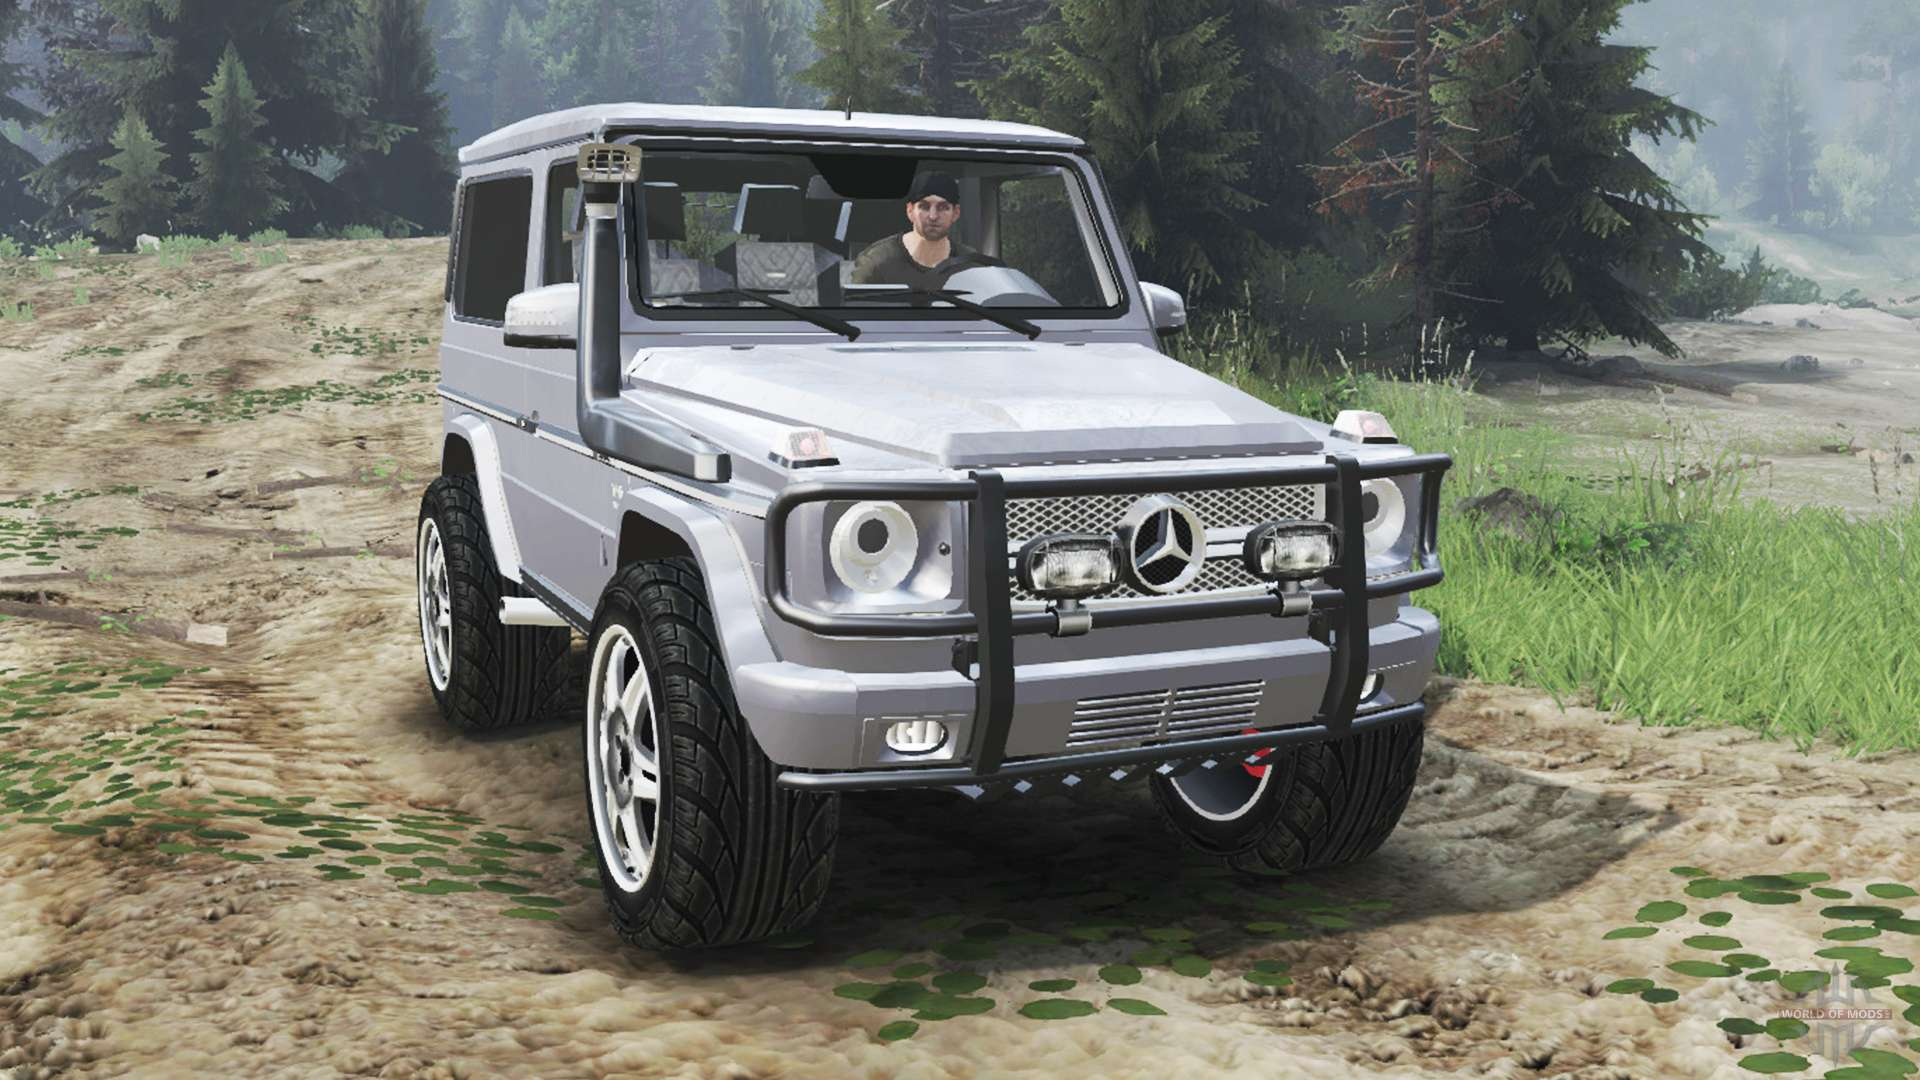 mercedes benz for spintires download for free \u2014 page 2mercedes benz g320 cdi [03 03 16] for spin tires